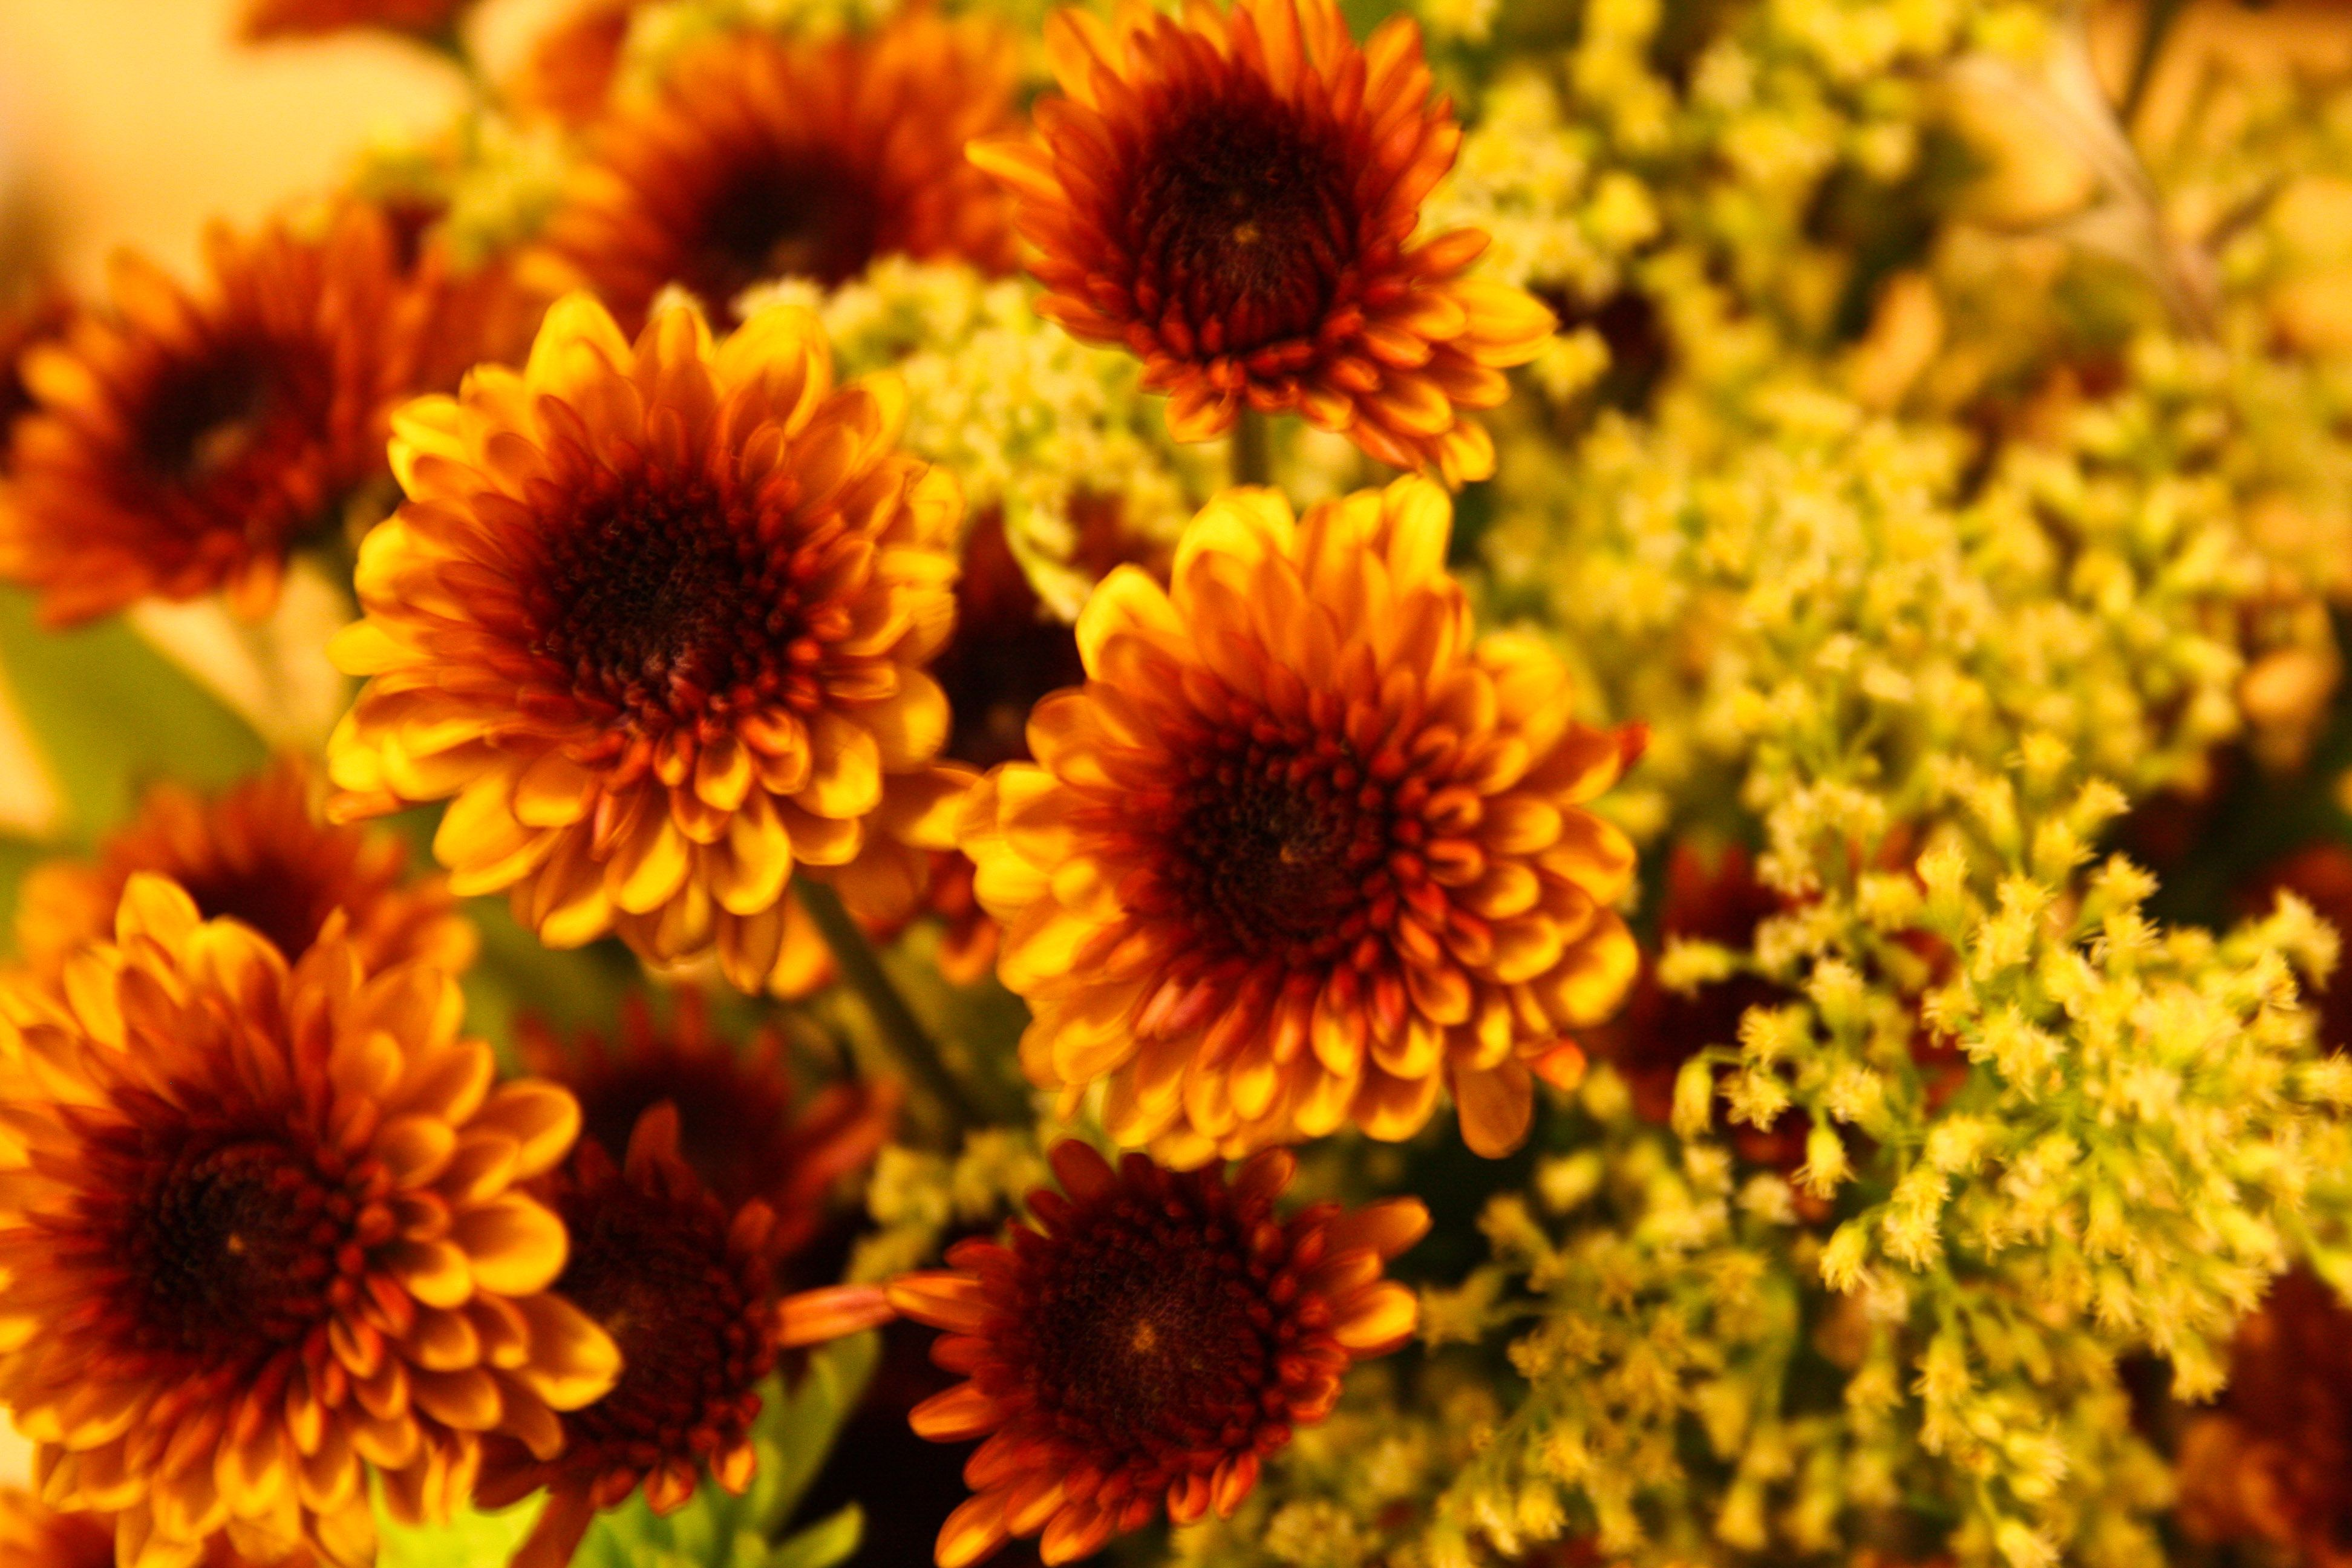 Flower fall flowers pinterest flowers hd flower wallpaper and images of fall flowers izmirmasajfo Image collections